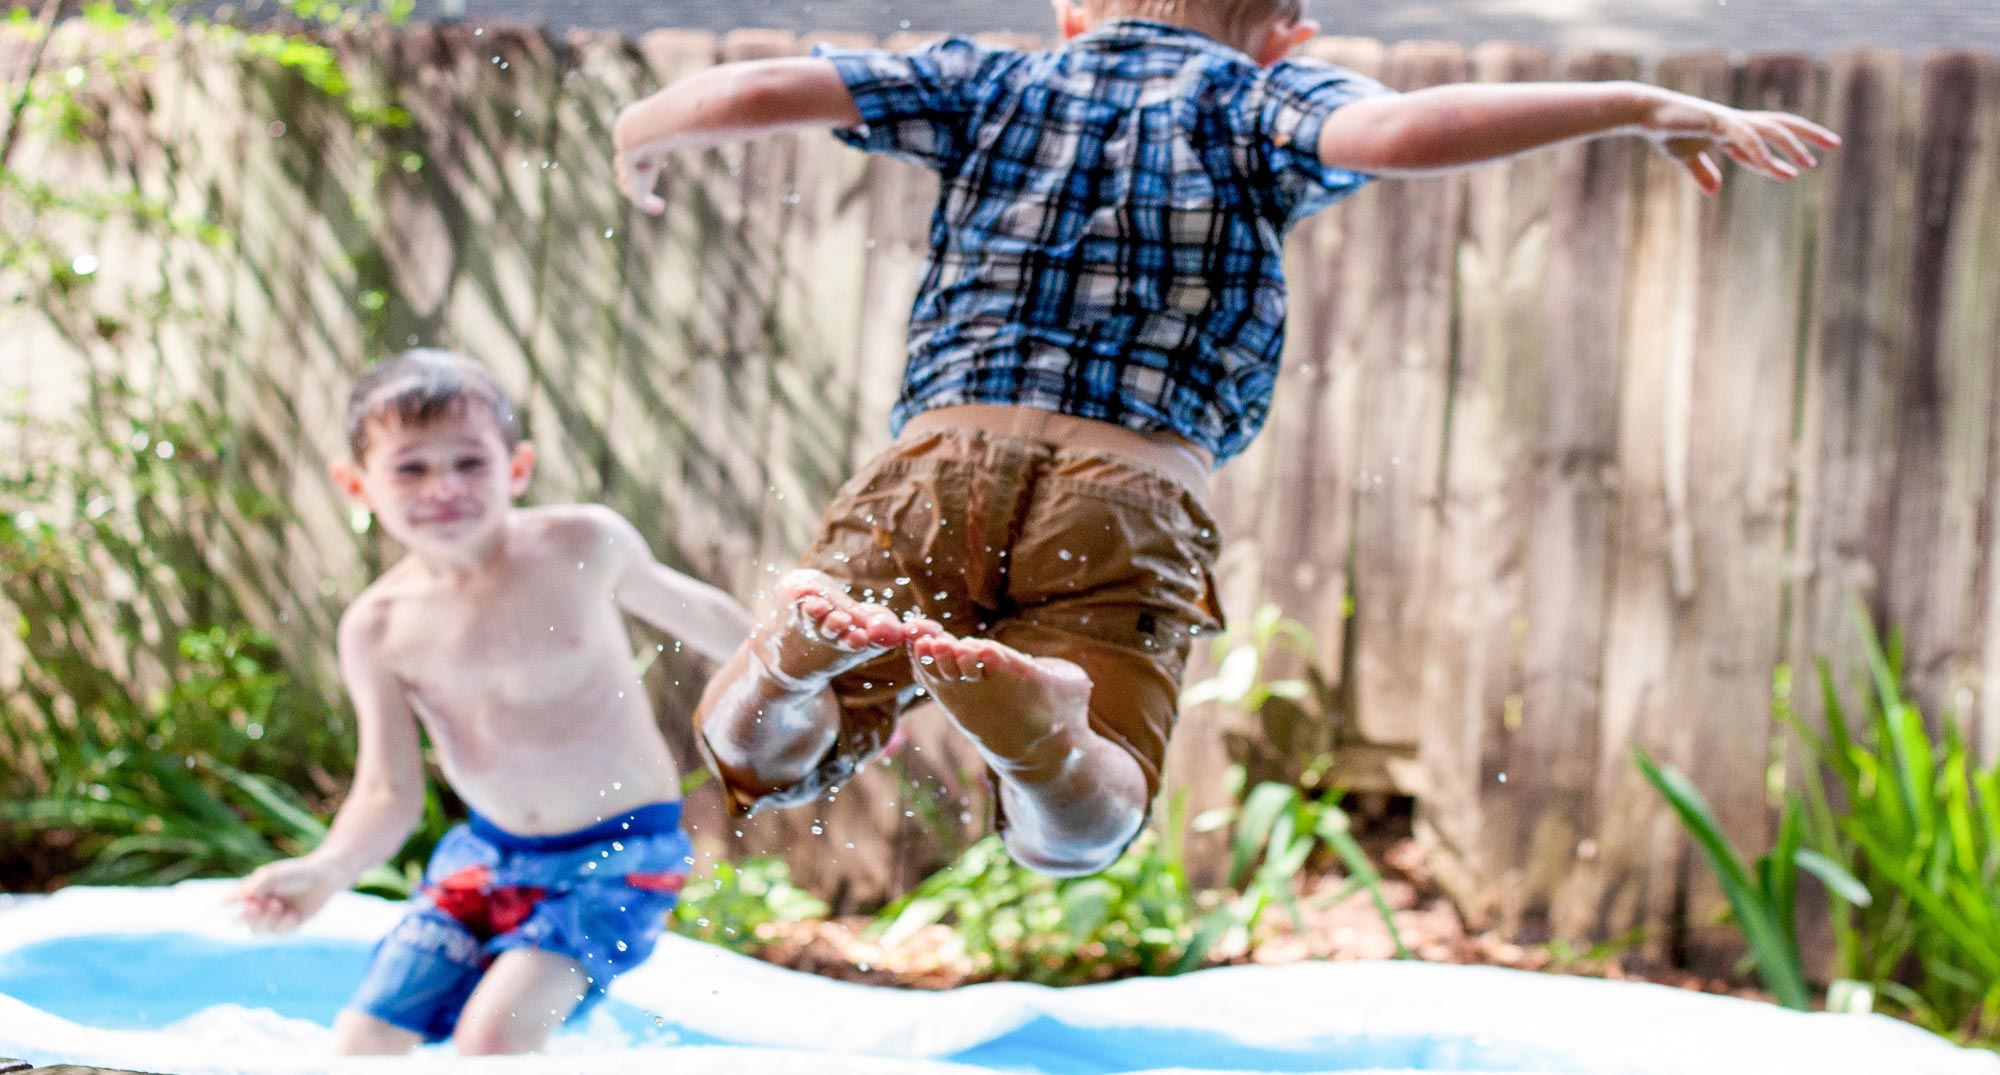 PARENTING: When Kids Play Too Rough